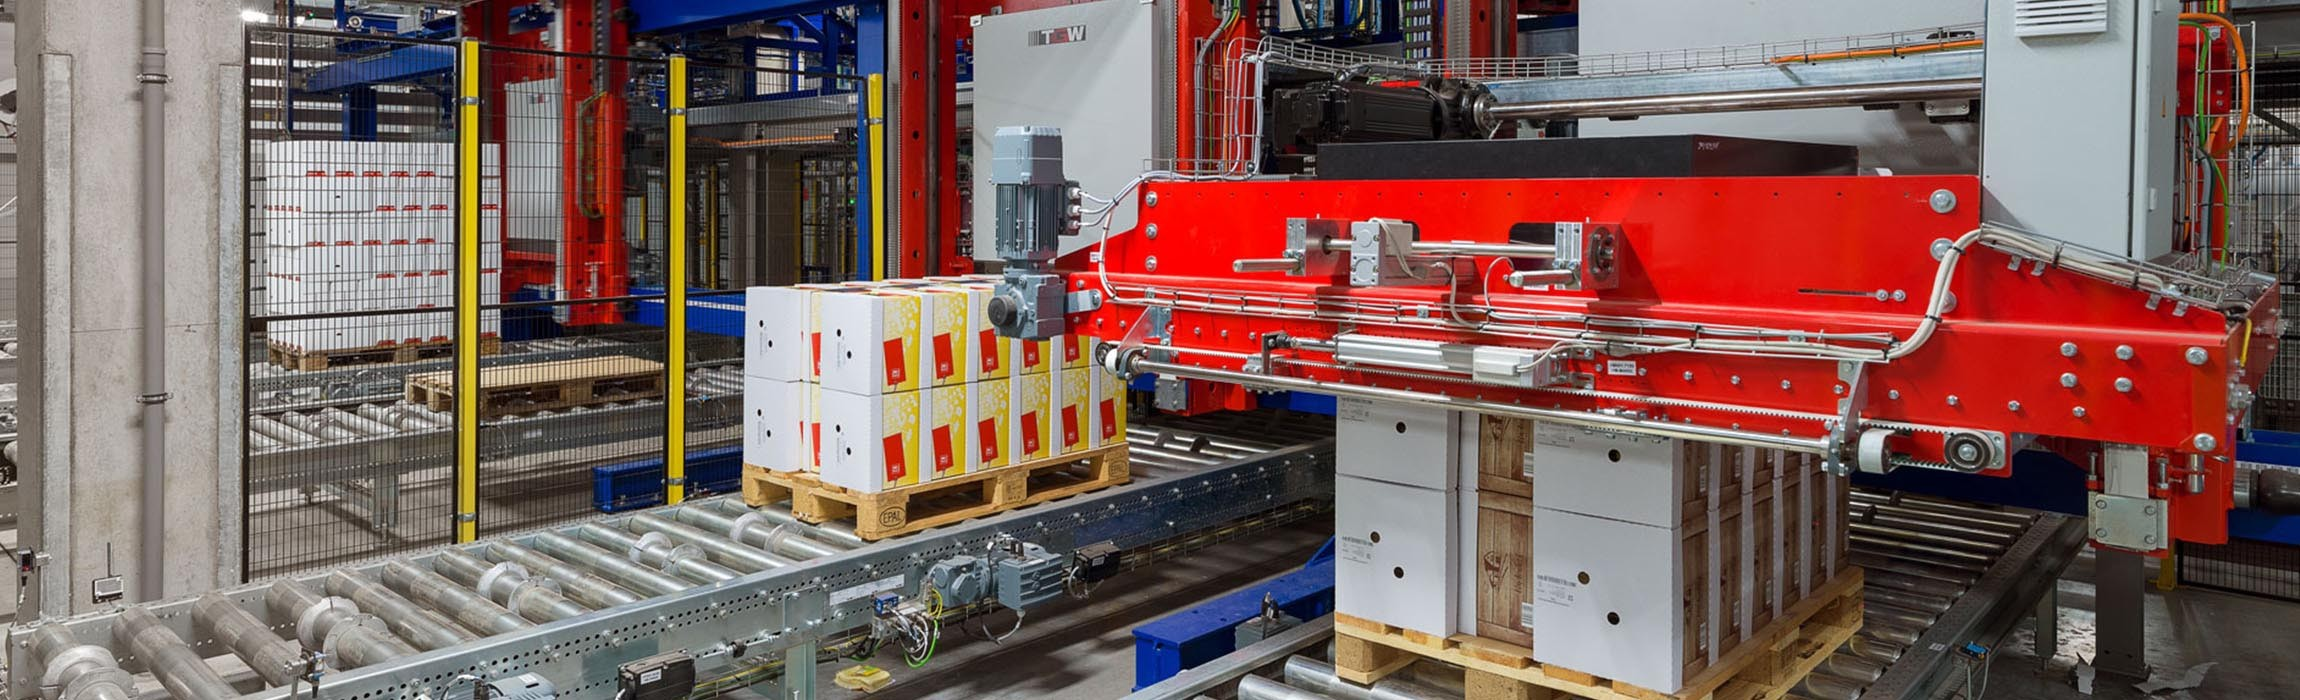 Thanks to this system, Heinrichsthaler was able to double its output to 100 pallets per hour.